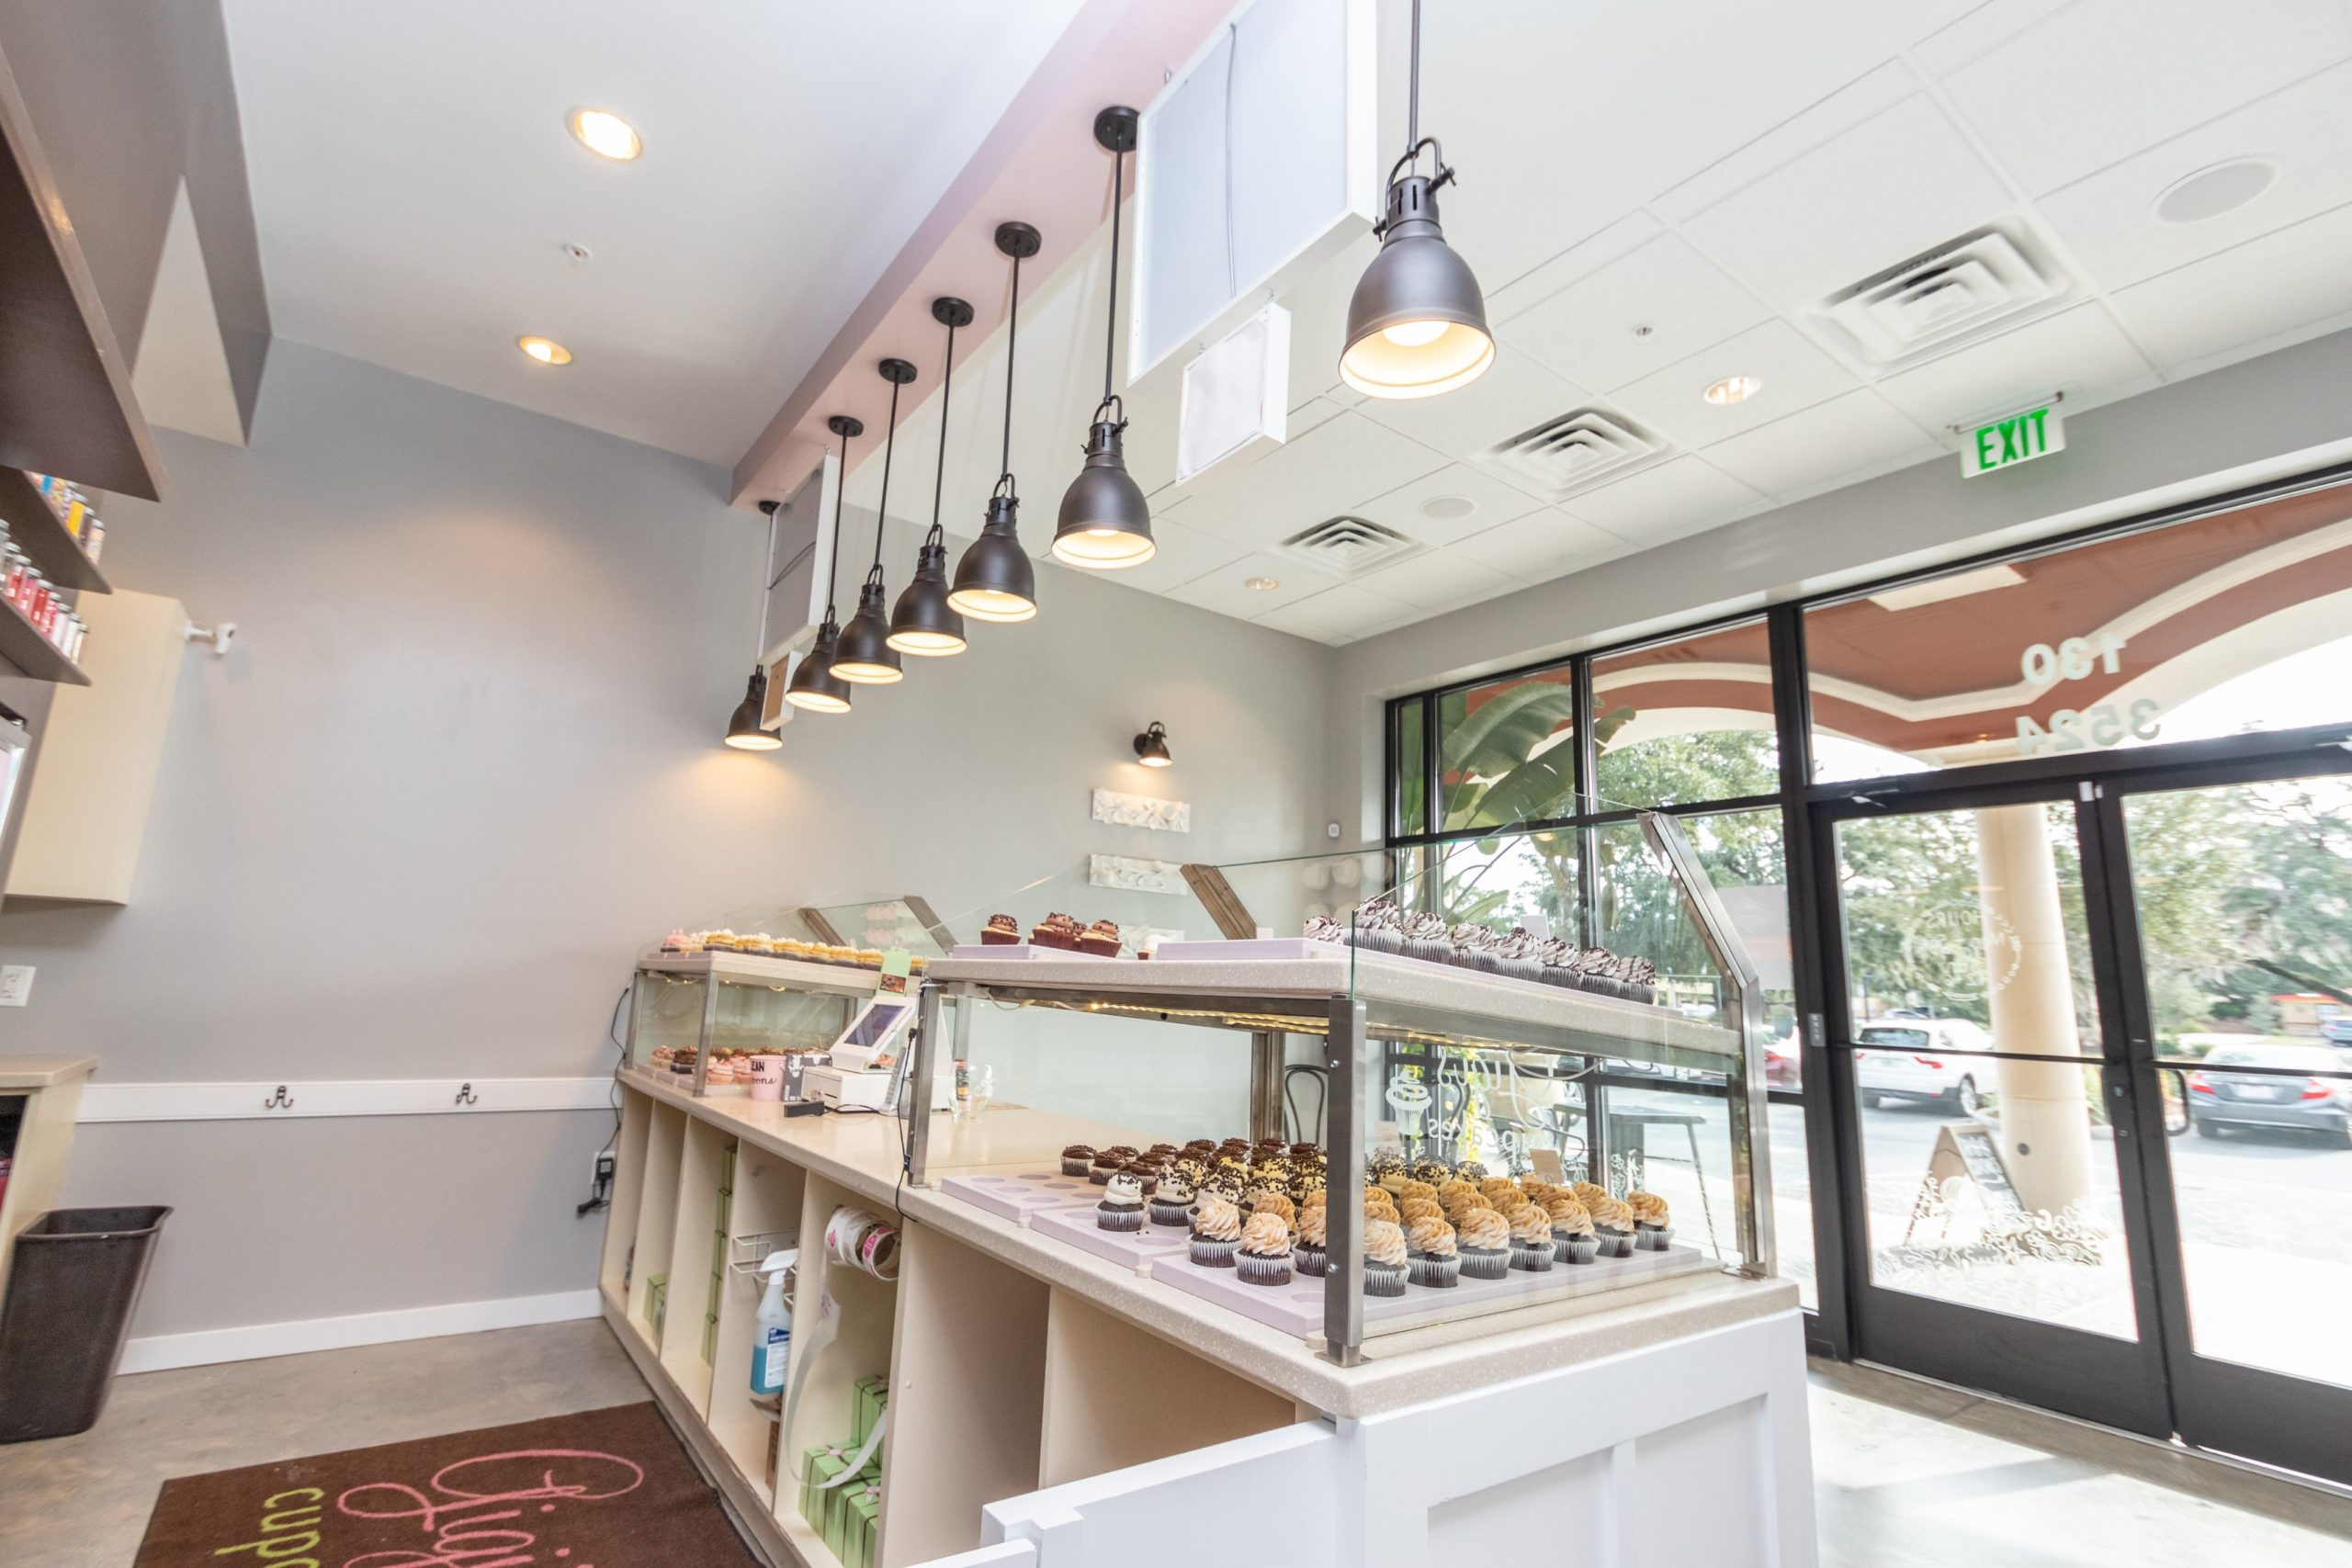 gigs cupcakes commercial build out by shore builders inc